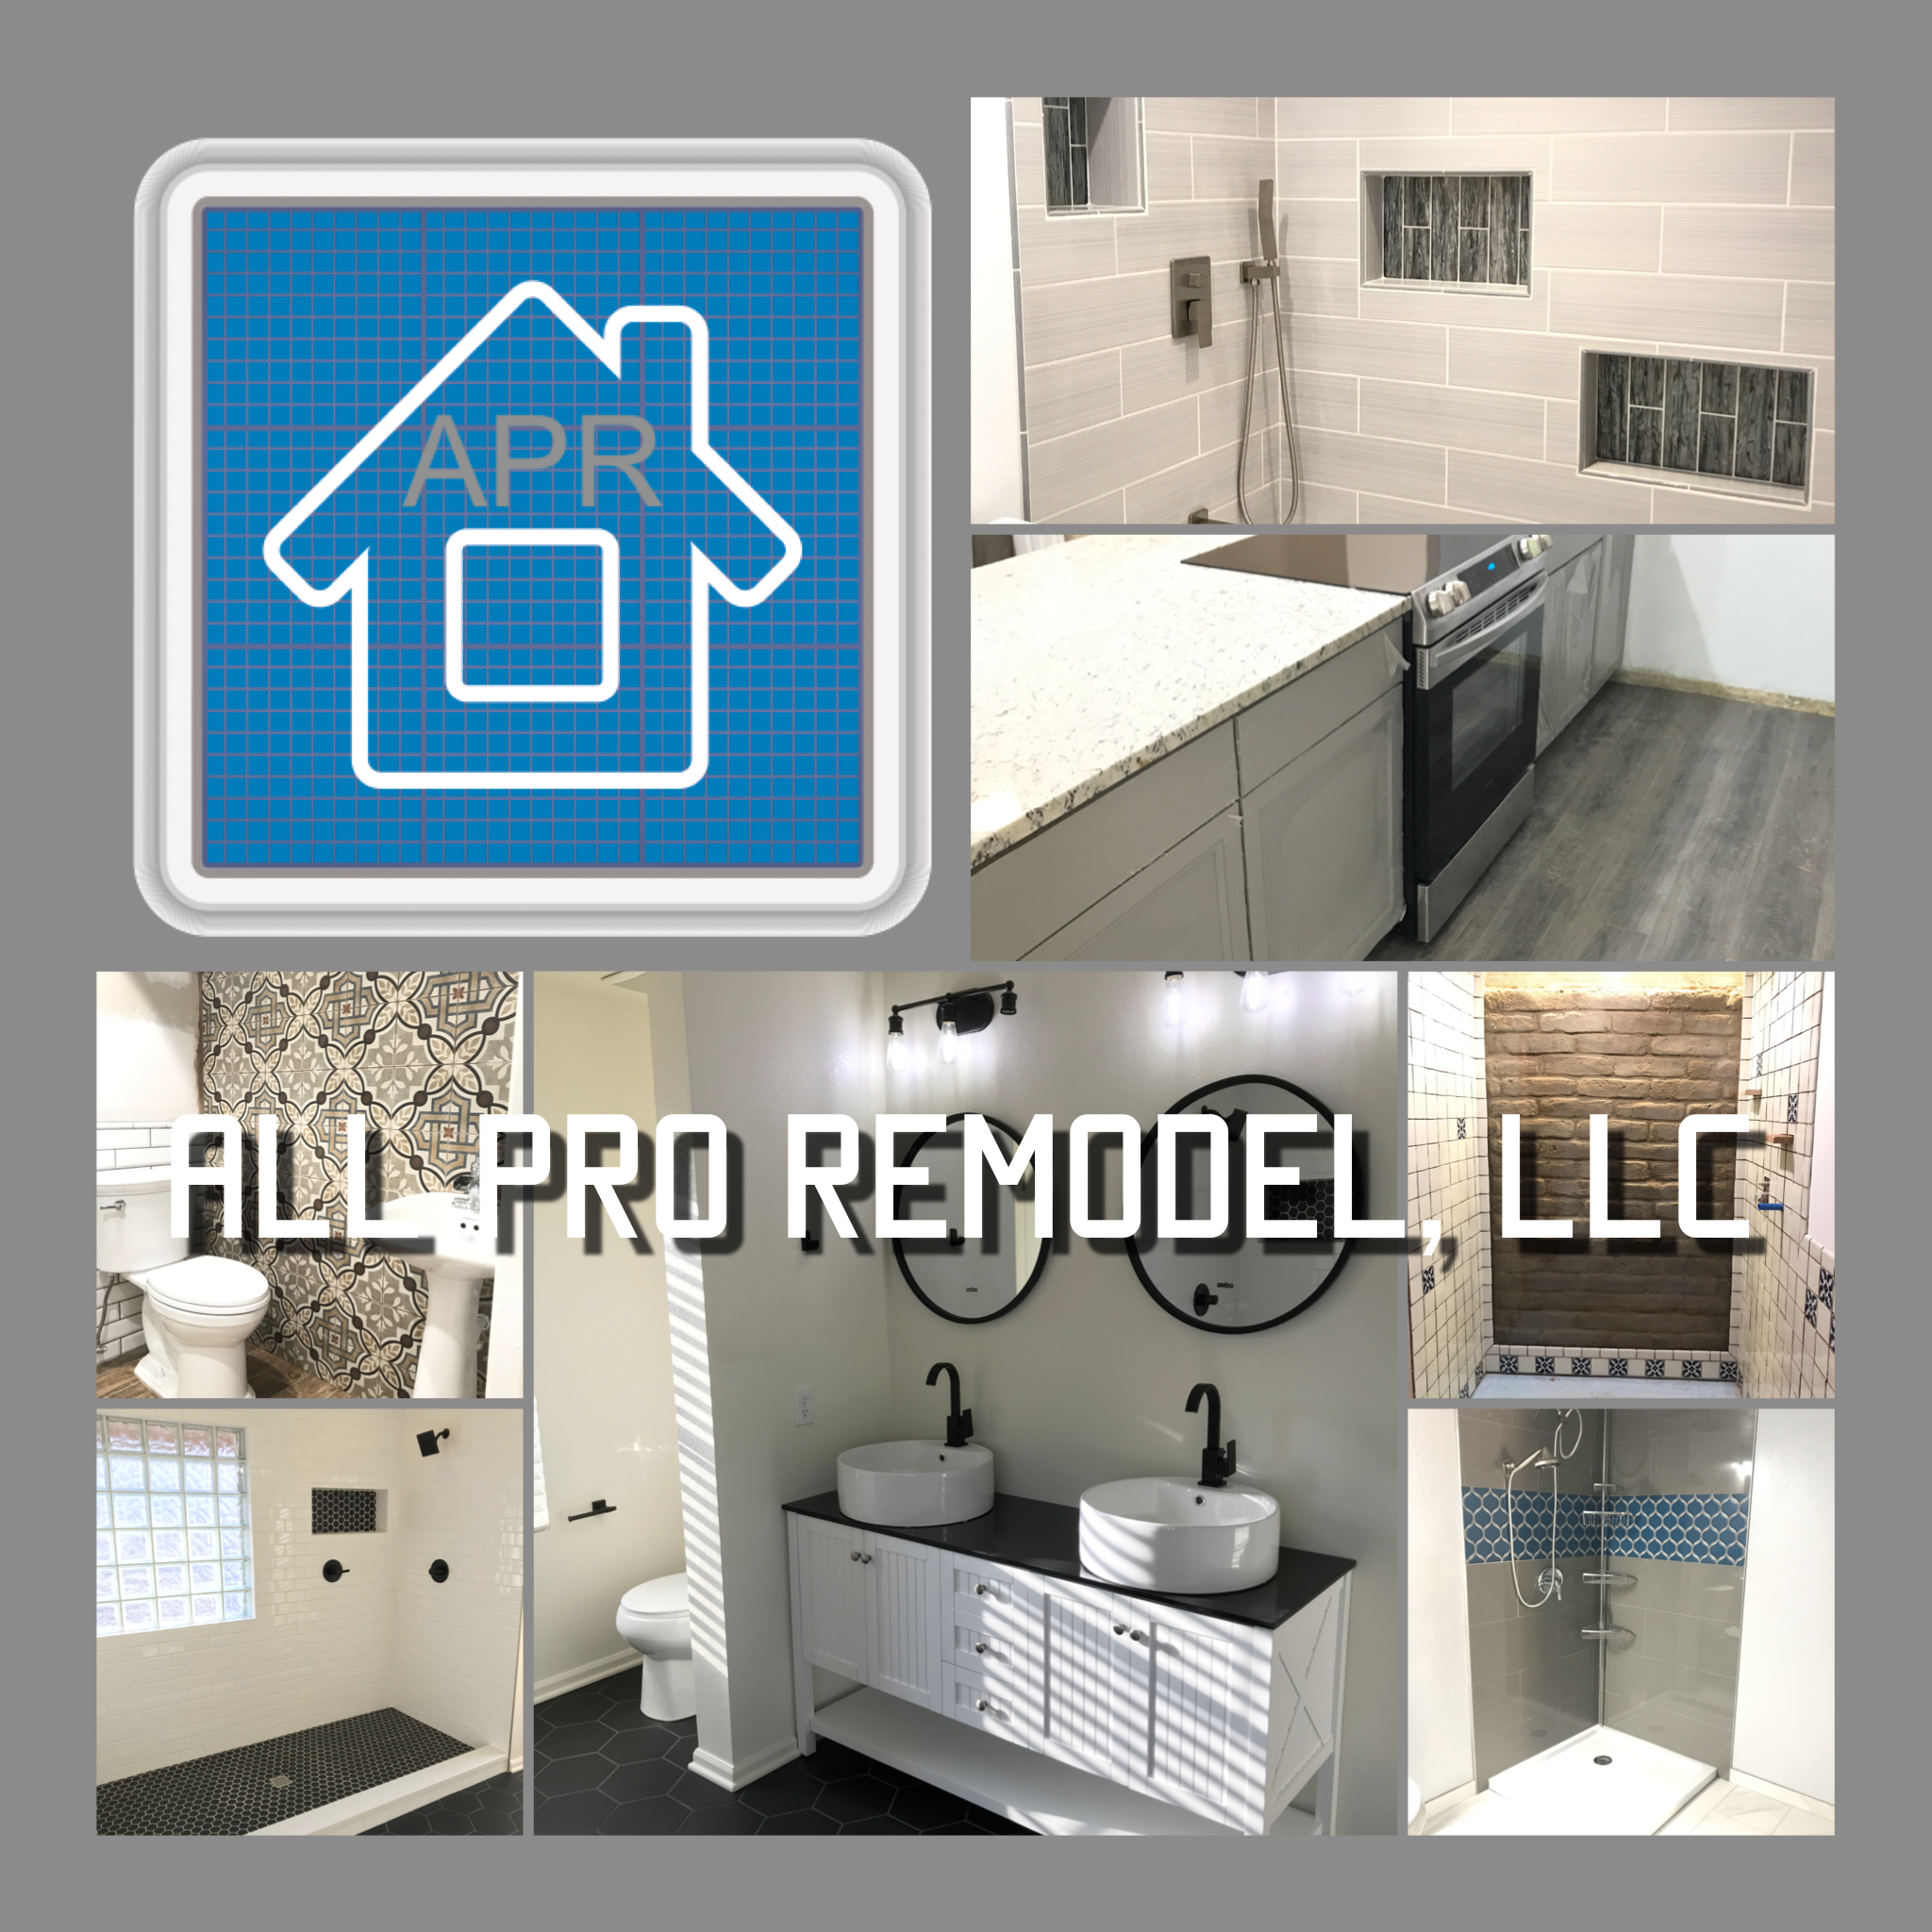 All Pro Remodel Services